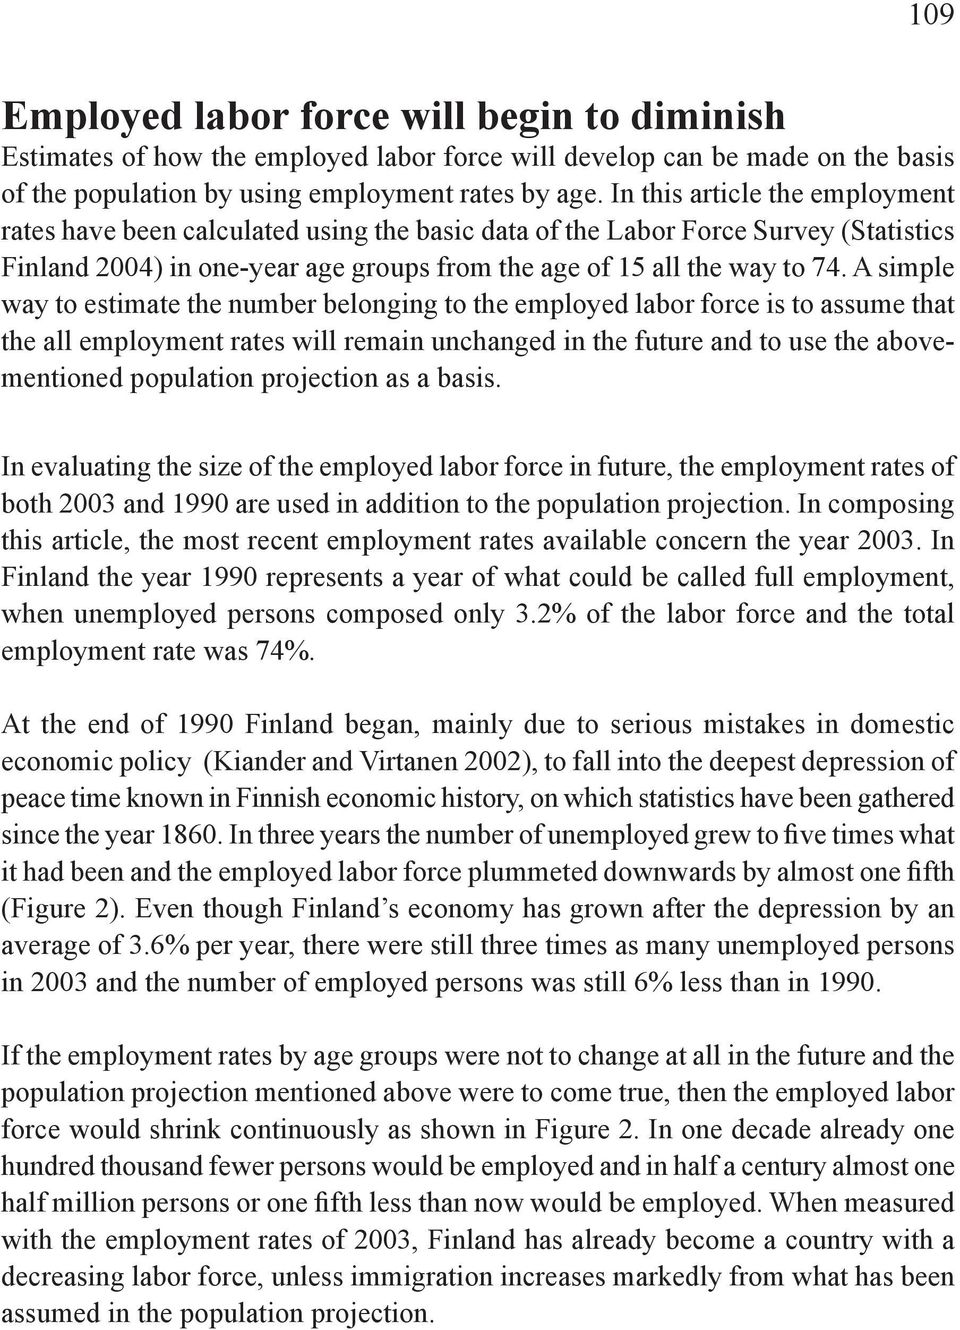 A simple way to estimate the number belonging to the employed labor force is to assume that the all employment rates will remain unchanged in the future and to use the abovementioned population